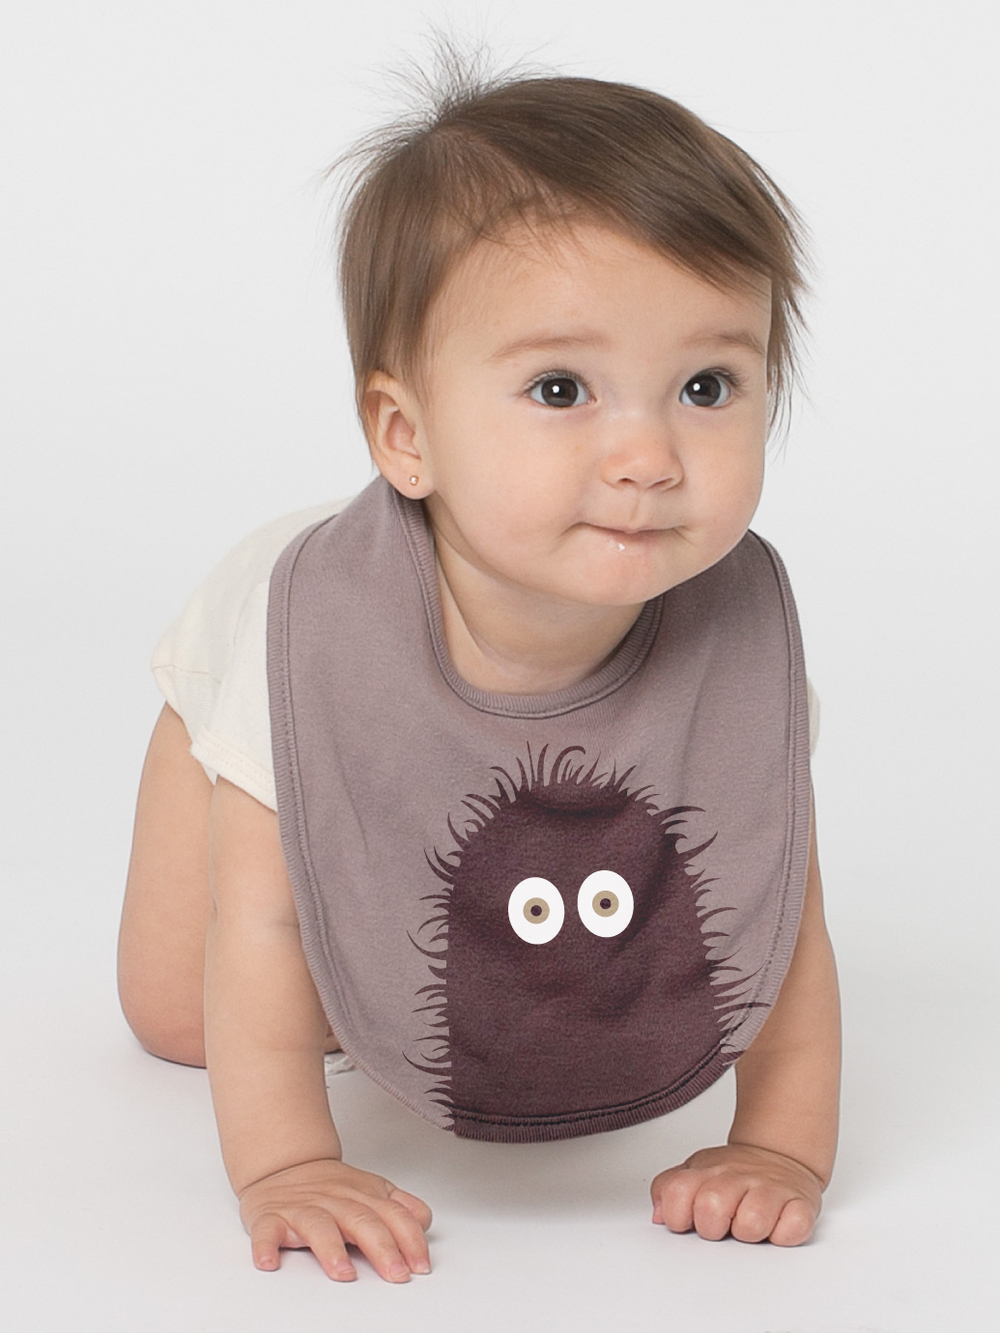 baby-bib-monster.jpg